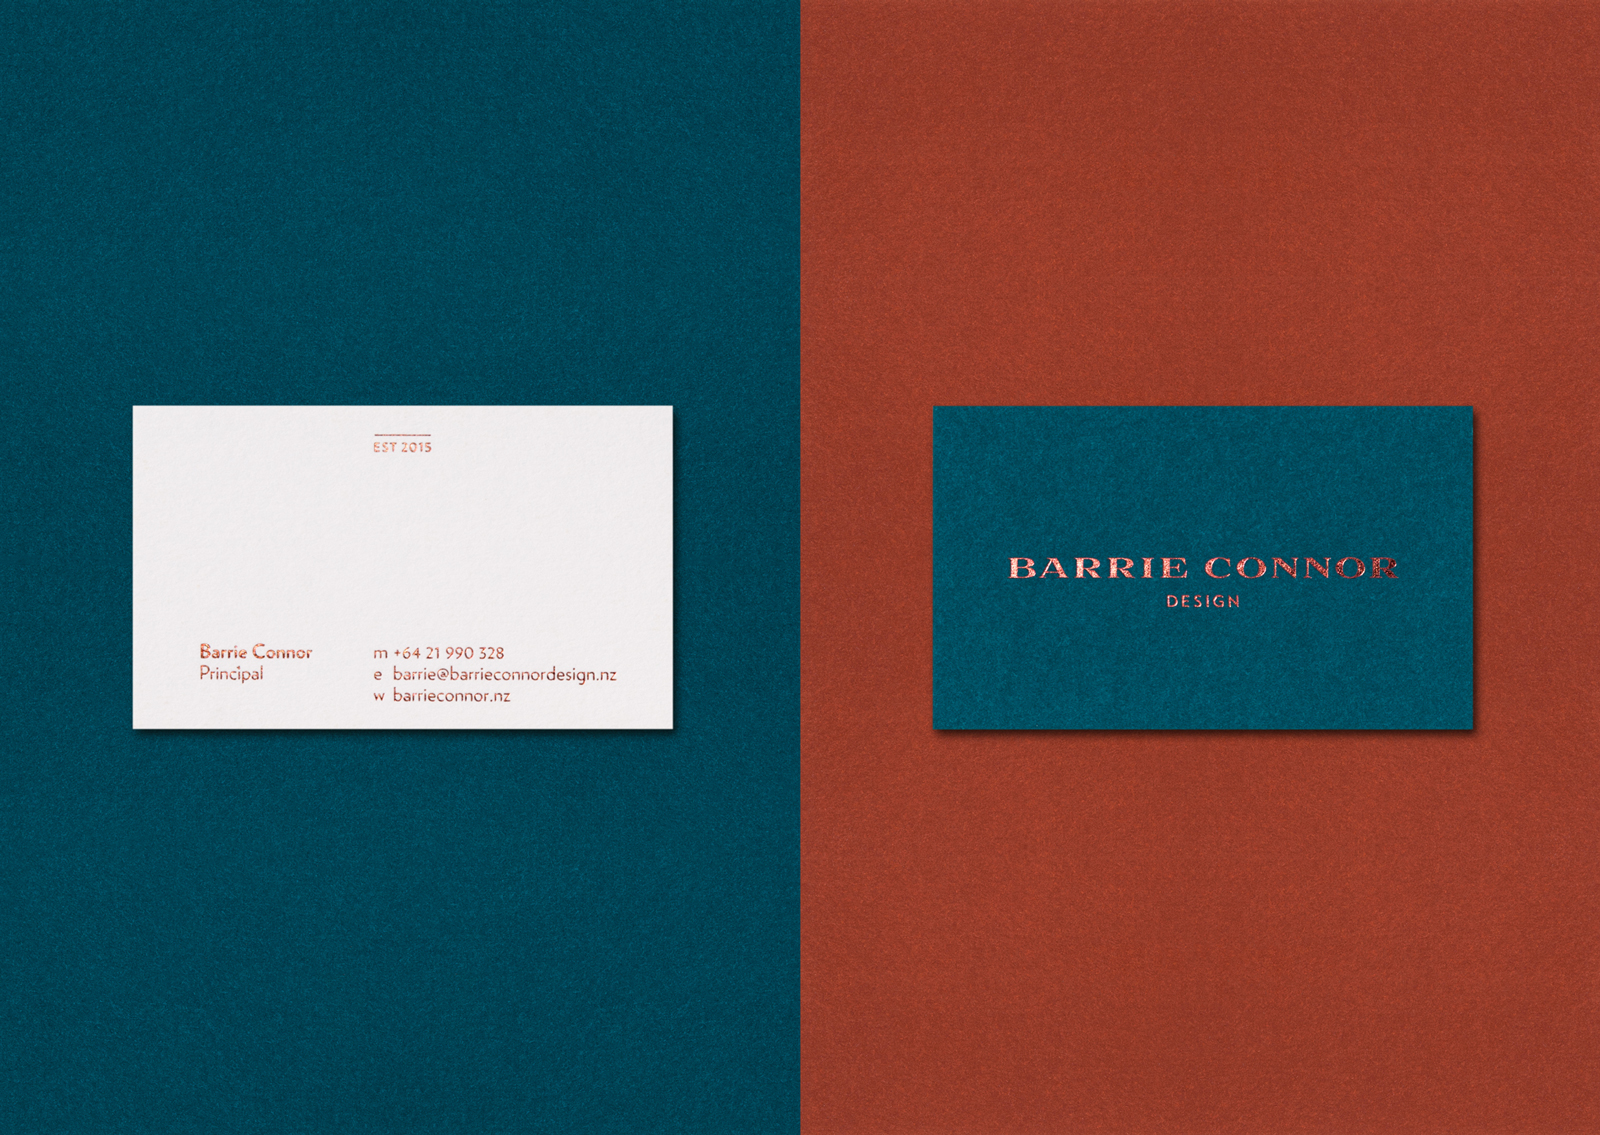 Minimal copper foil typography and Rich tan and delft blue contrast on the trio of Barrie Connor business cards